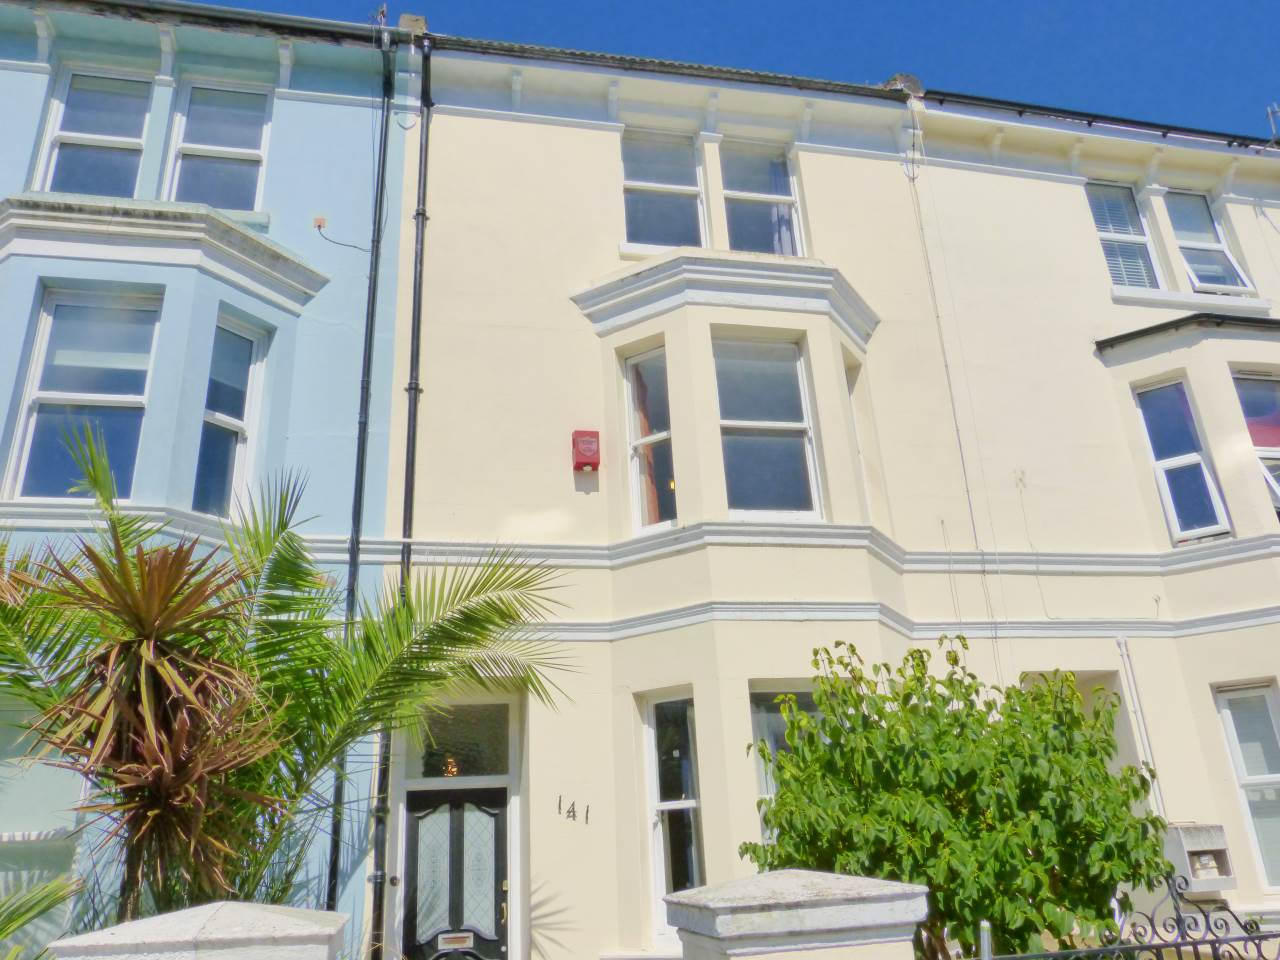 6 bed house to rent in Queen's Park Road, Brighton, BN2